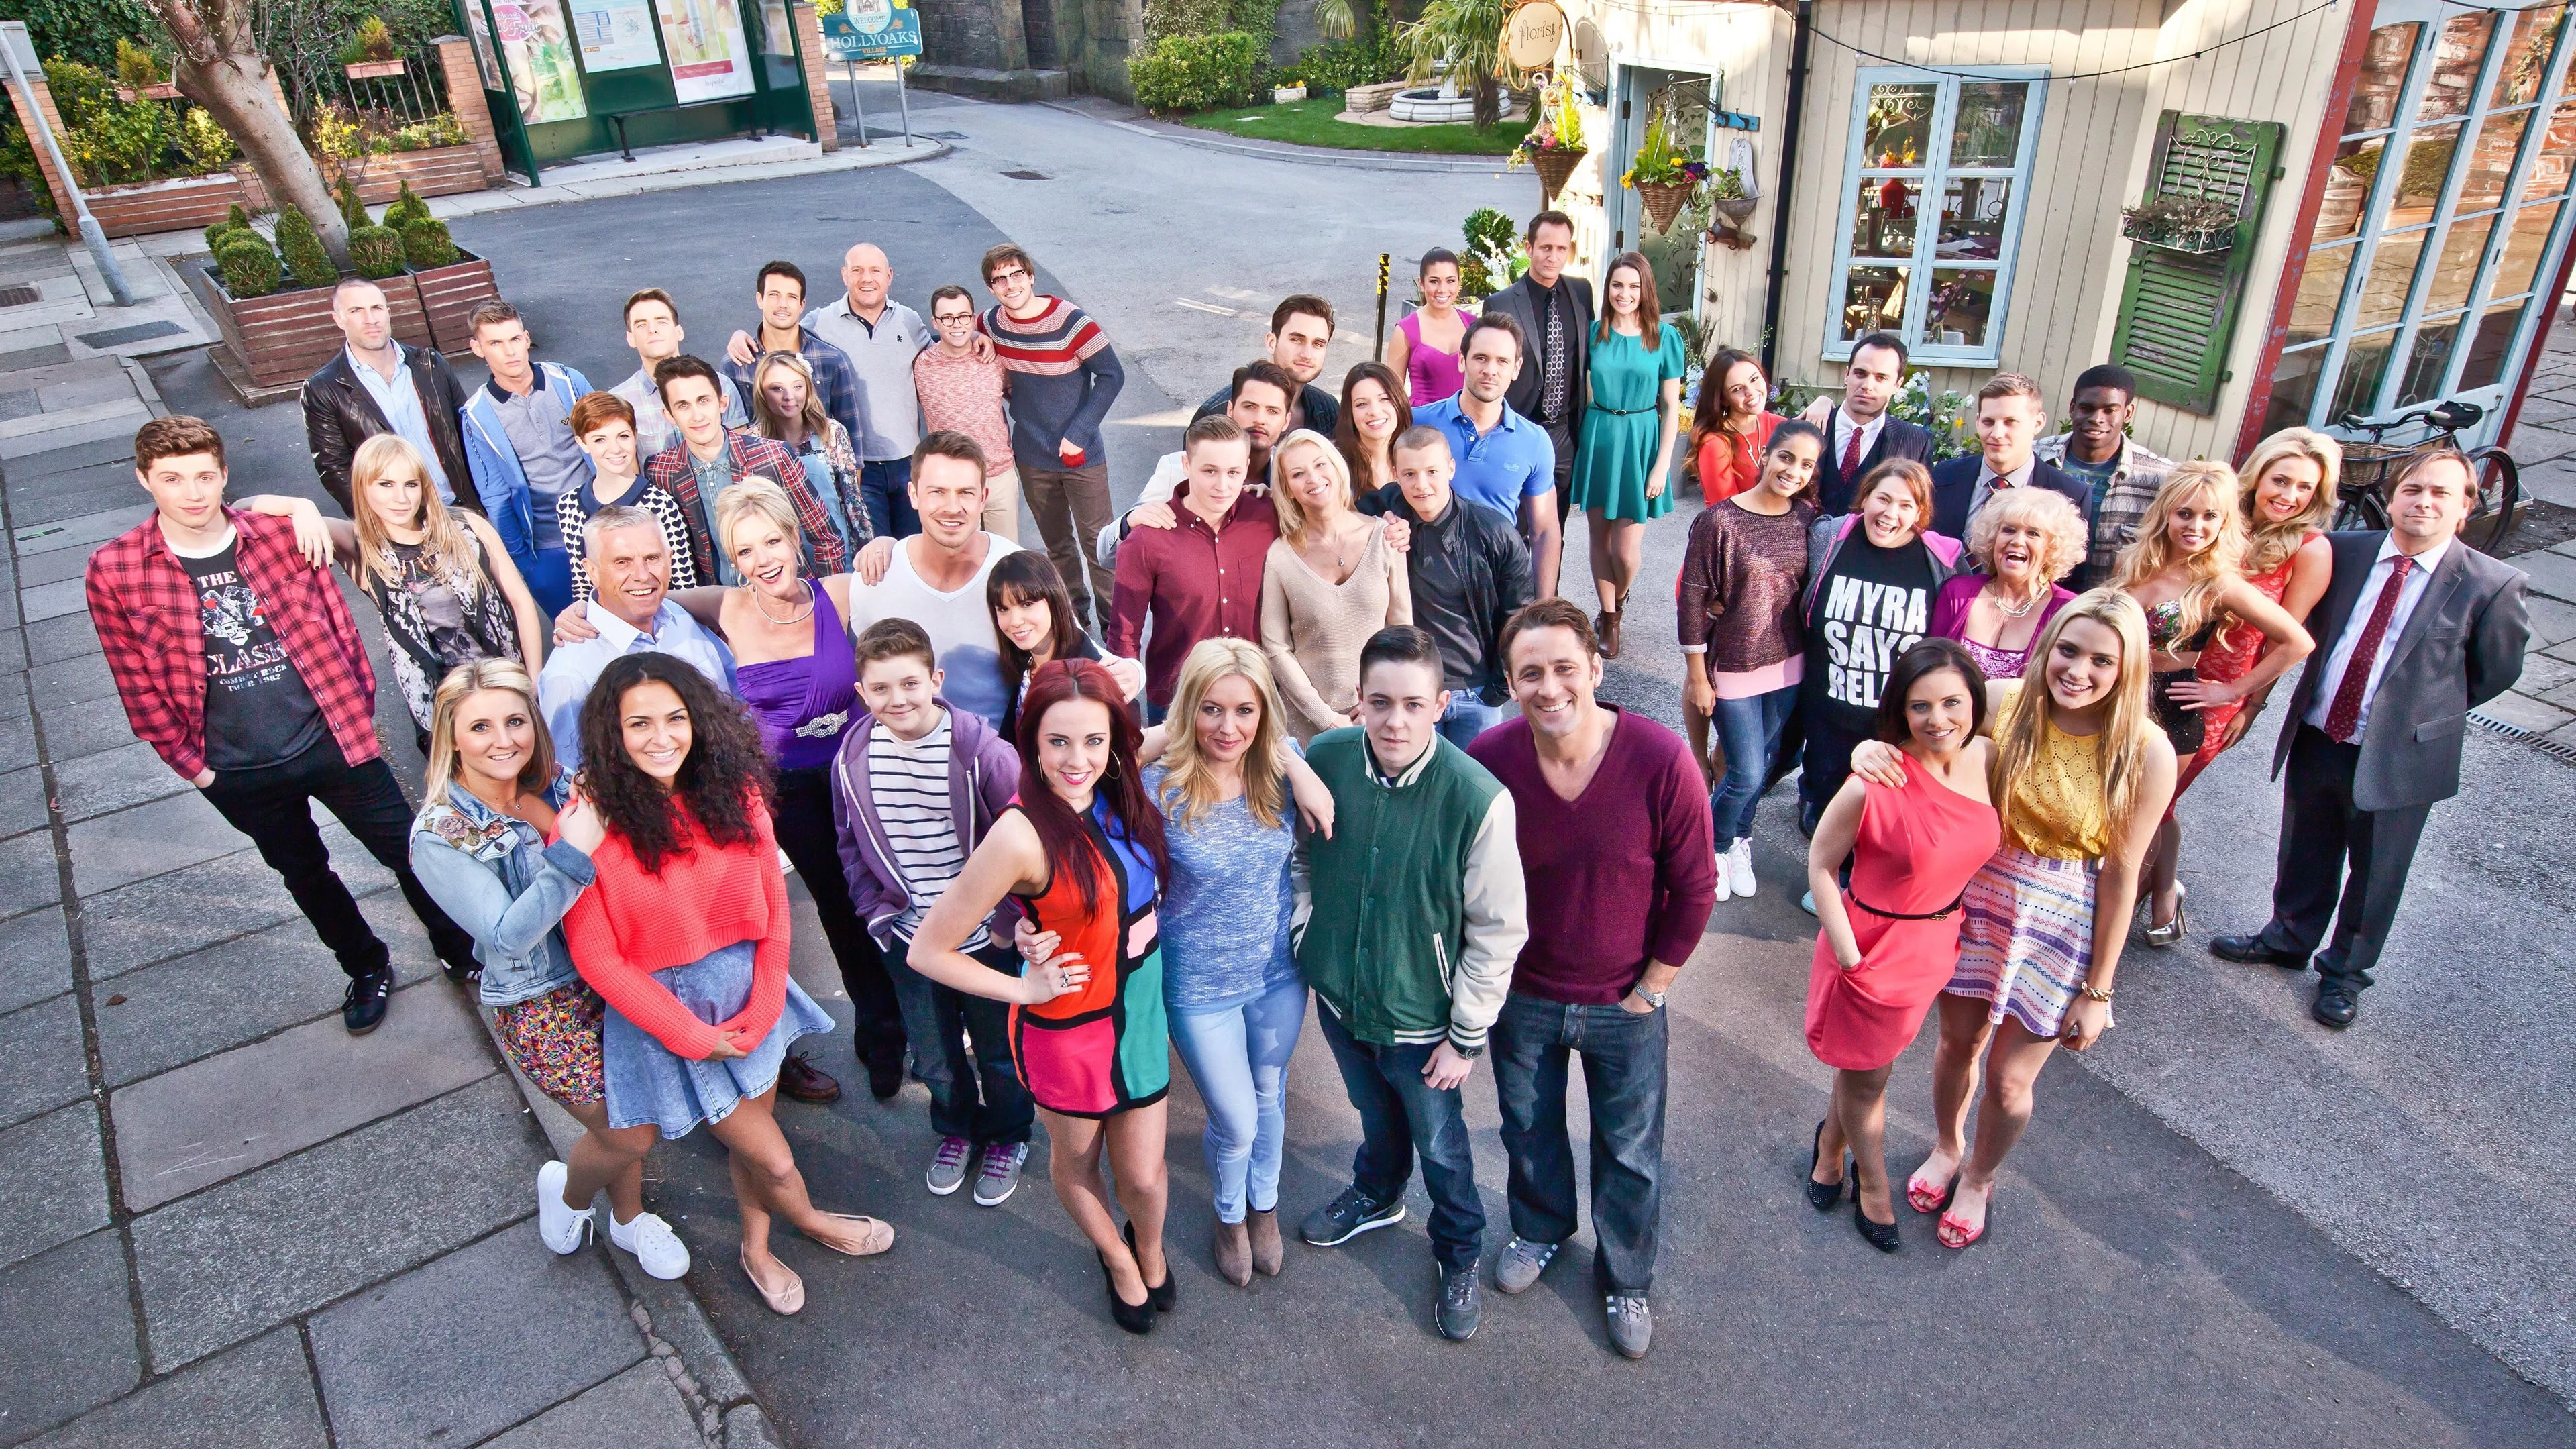 Hollyoaks - Season 20 Episode 82 : Shockwaves Through the Village